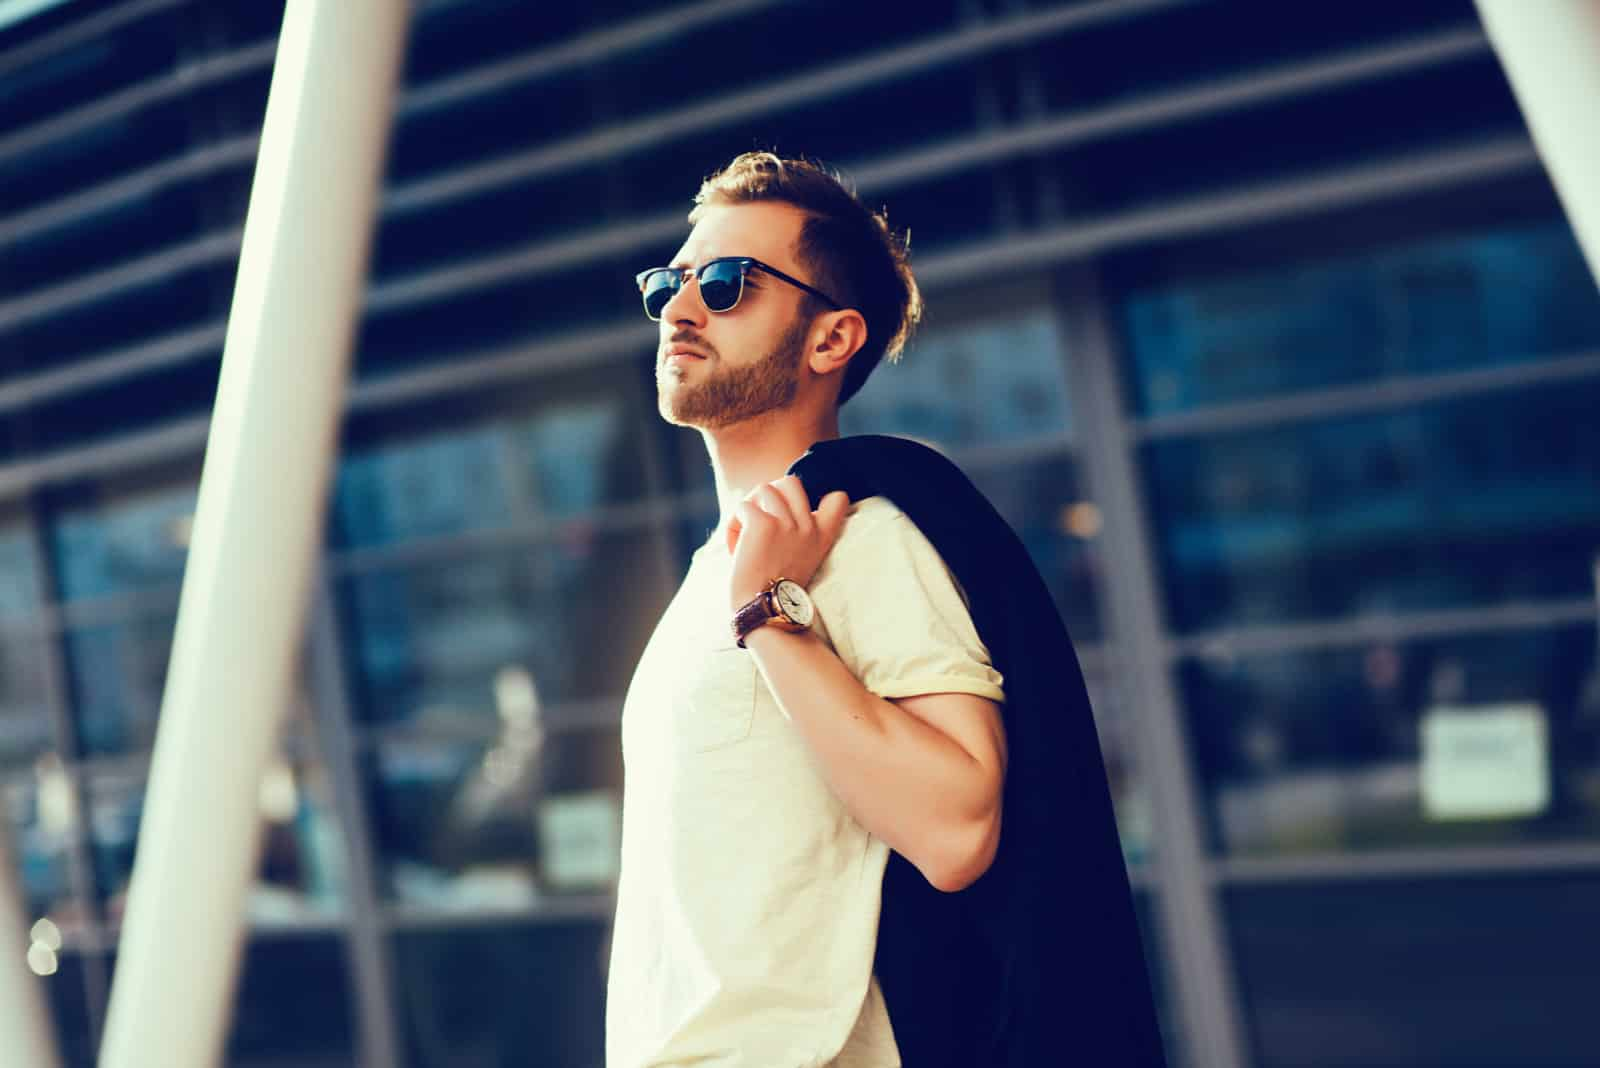 fashionable man with sunglasses